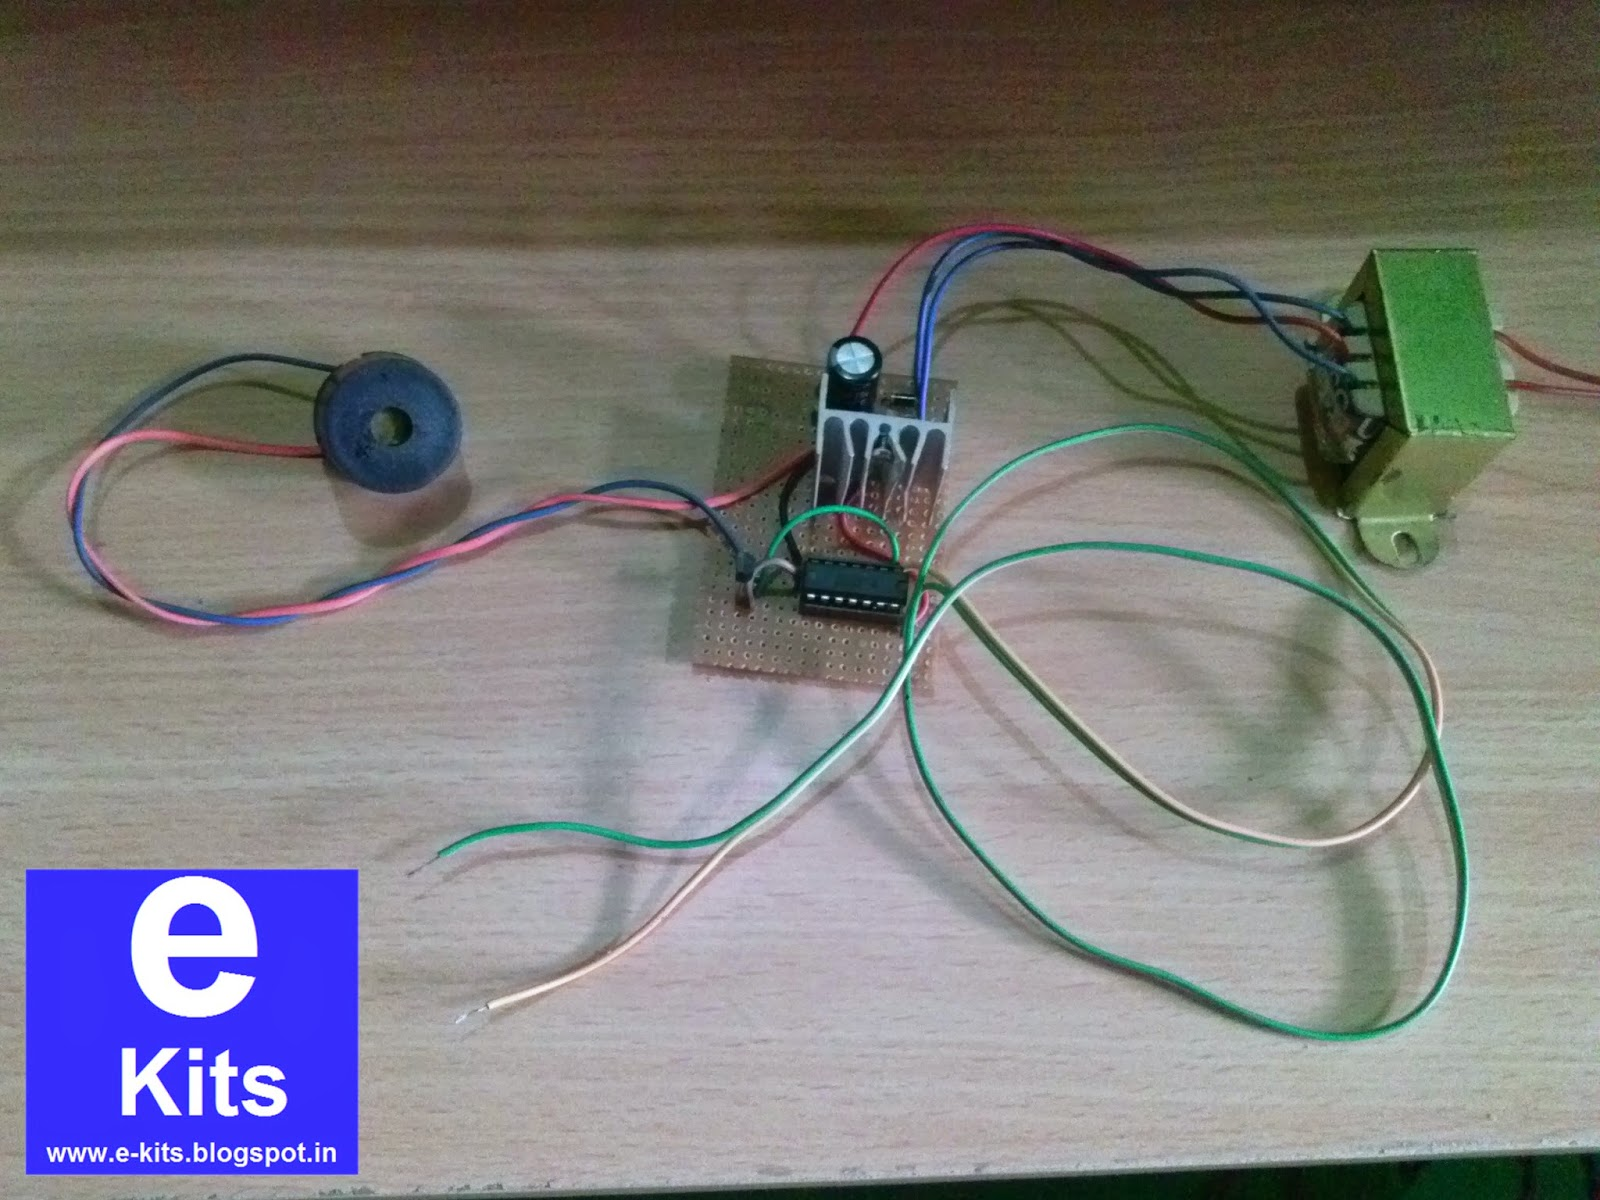 Buy Electronic Projects Online: Water Level Monitoring System